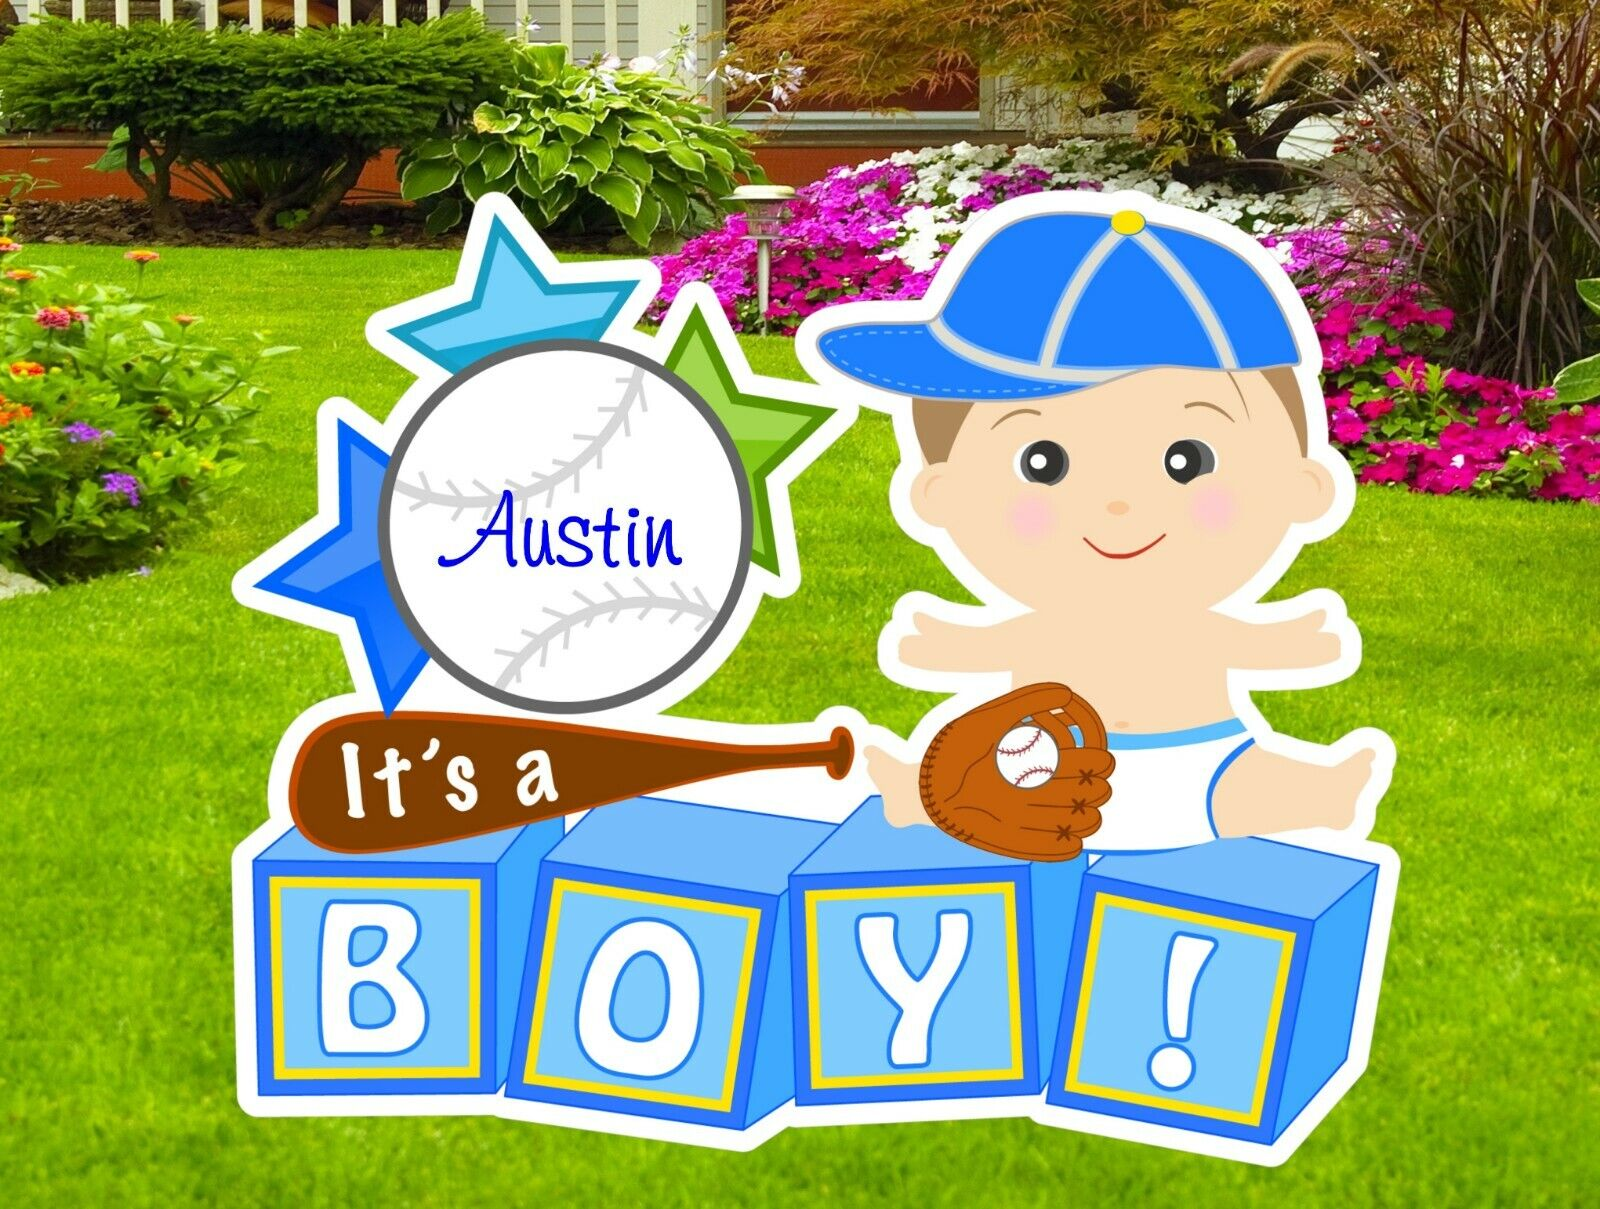 It's a Boy Yard Announcement Card Sign, Personalized Baby Baseball Decoration